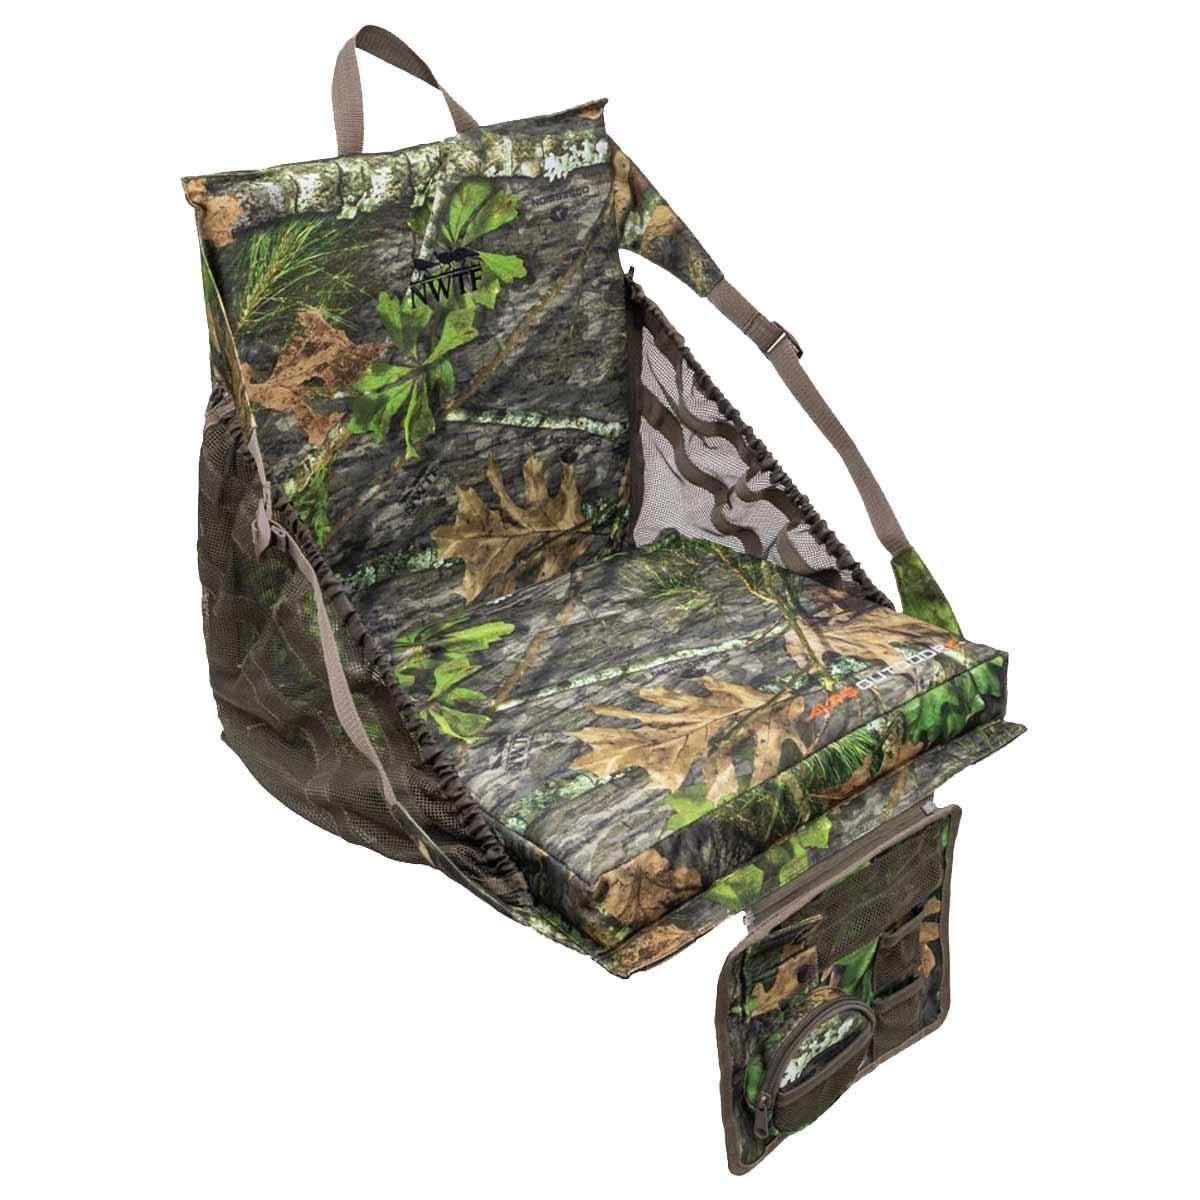 Alps NWTF Scout Chair, Mossy Oay Obsession_1.jpg